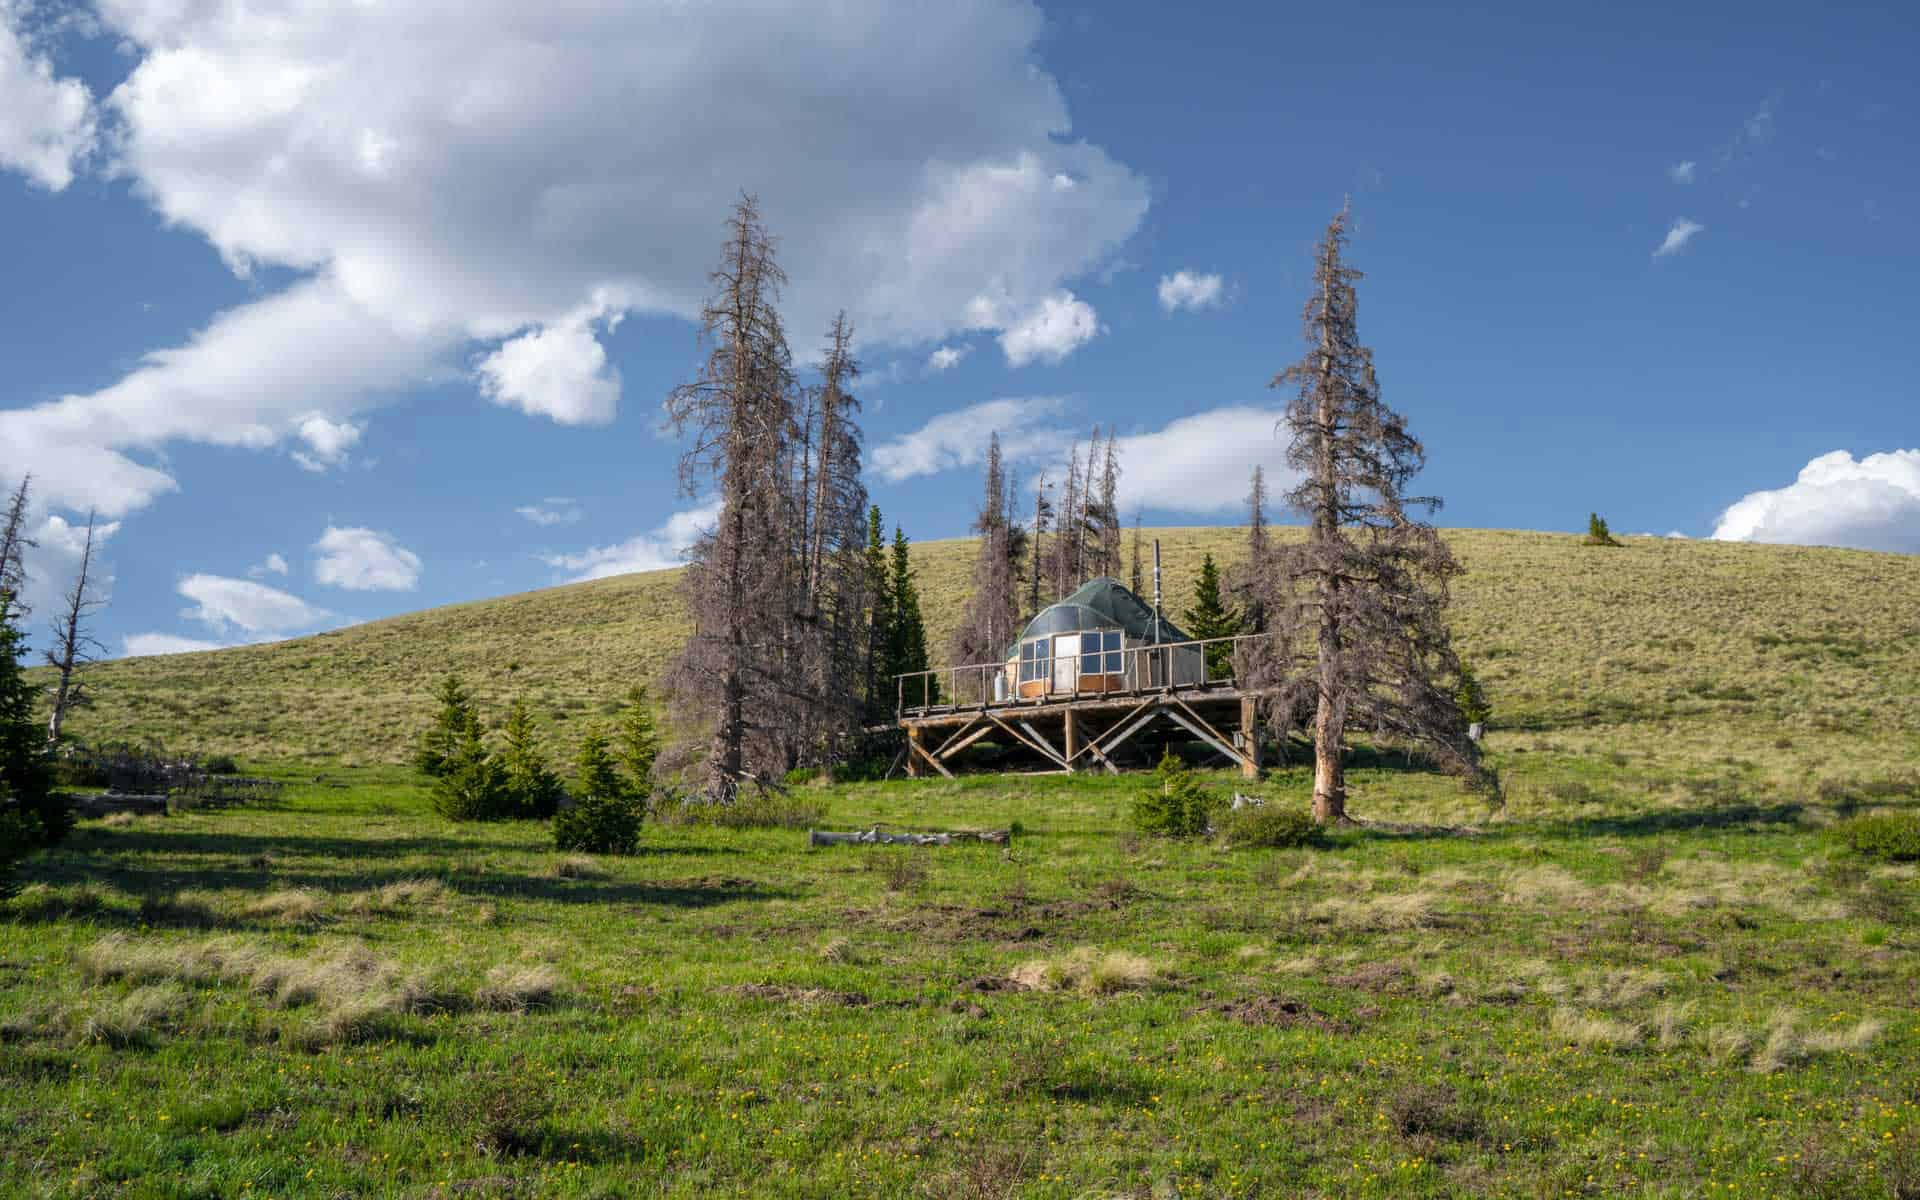 CDT Colorado San Juan Mountains Yurt 2